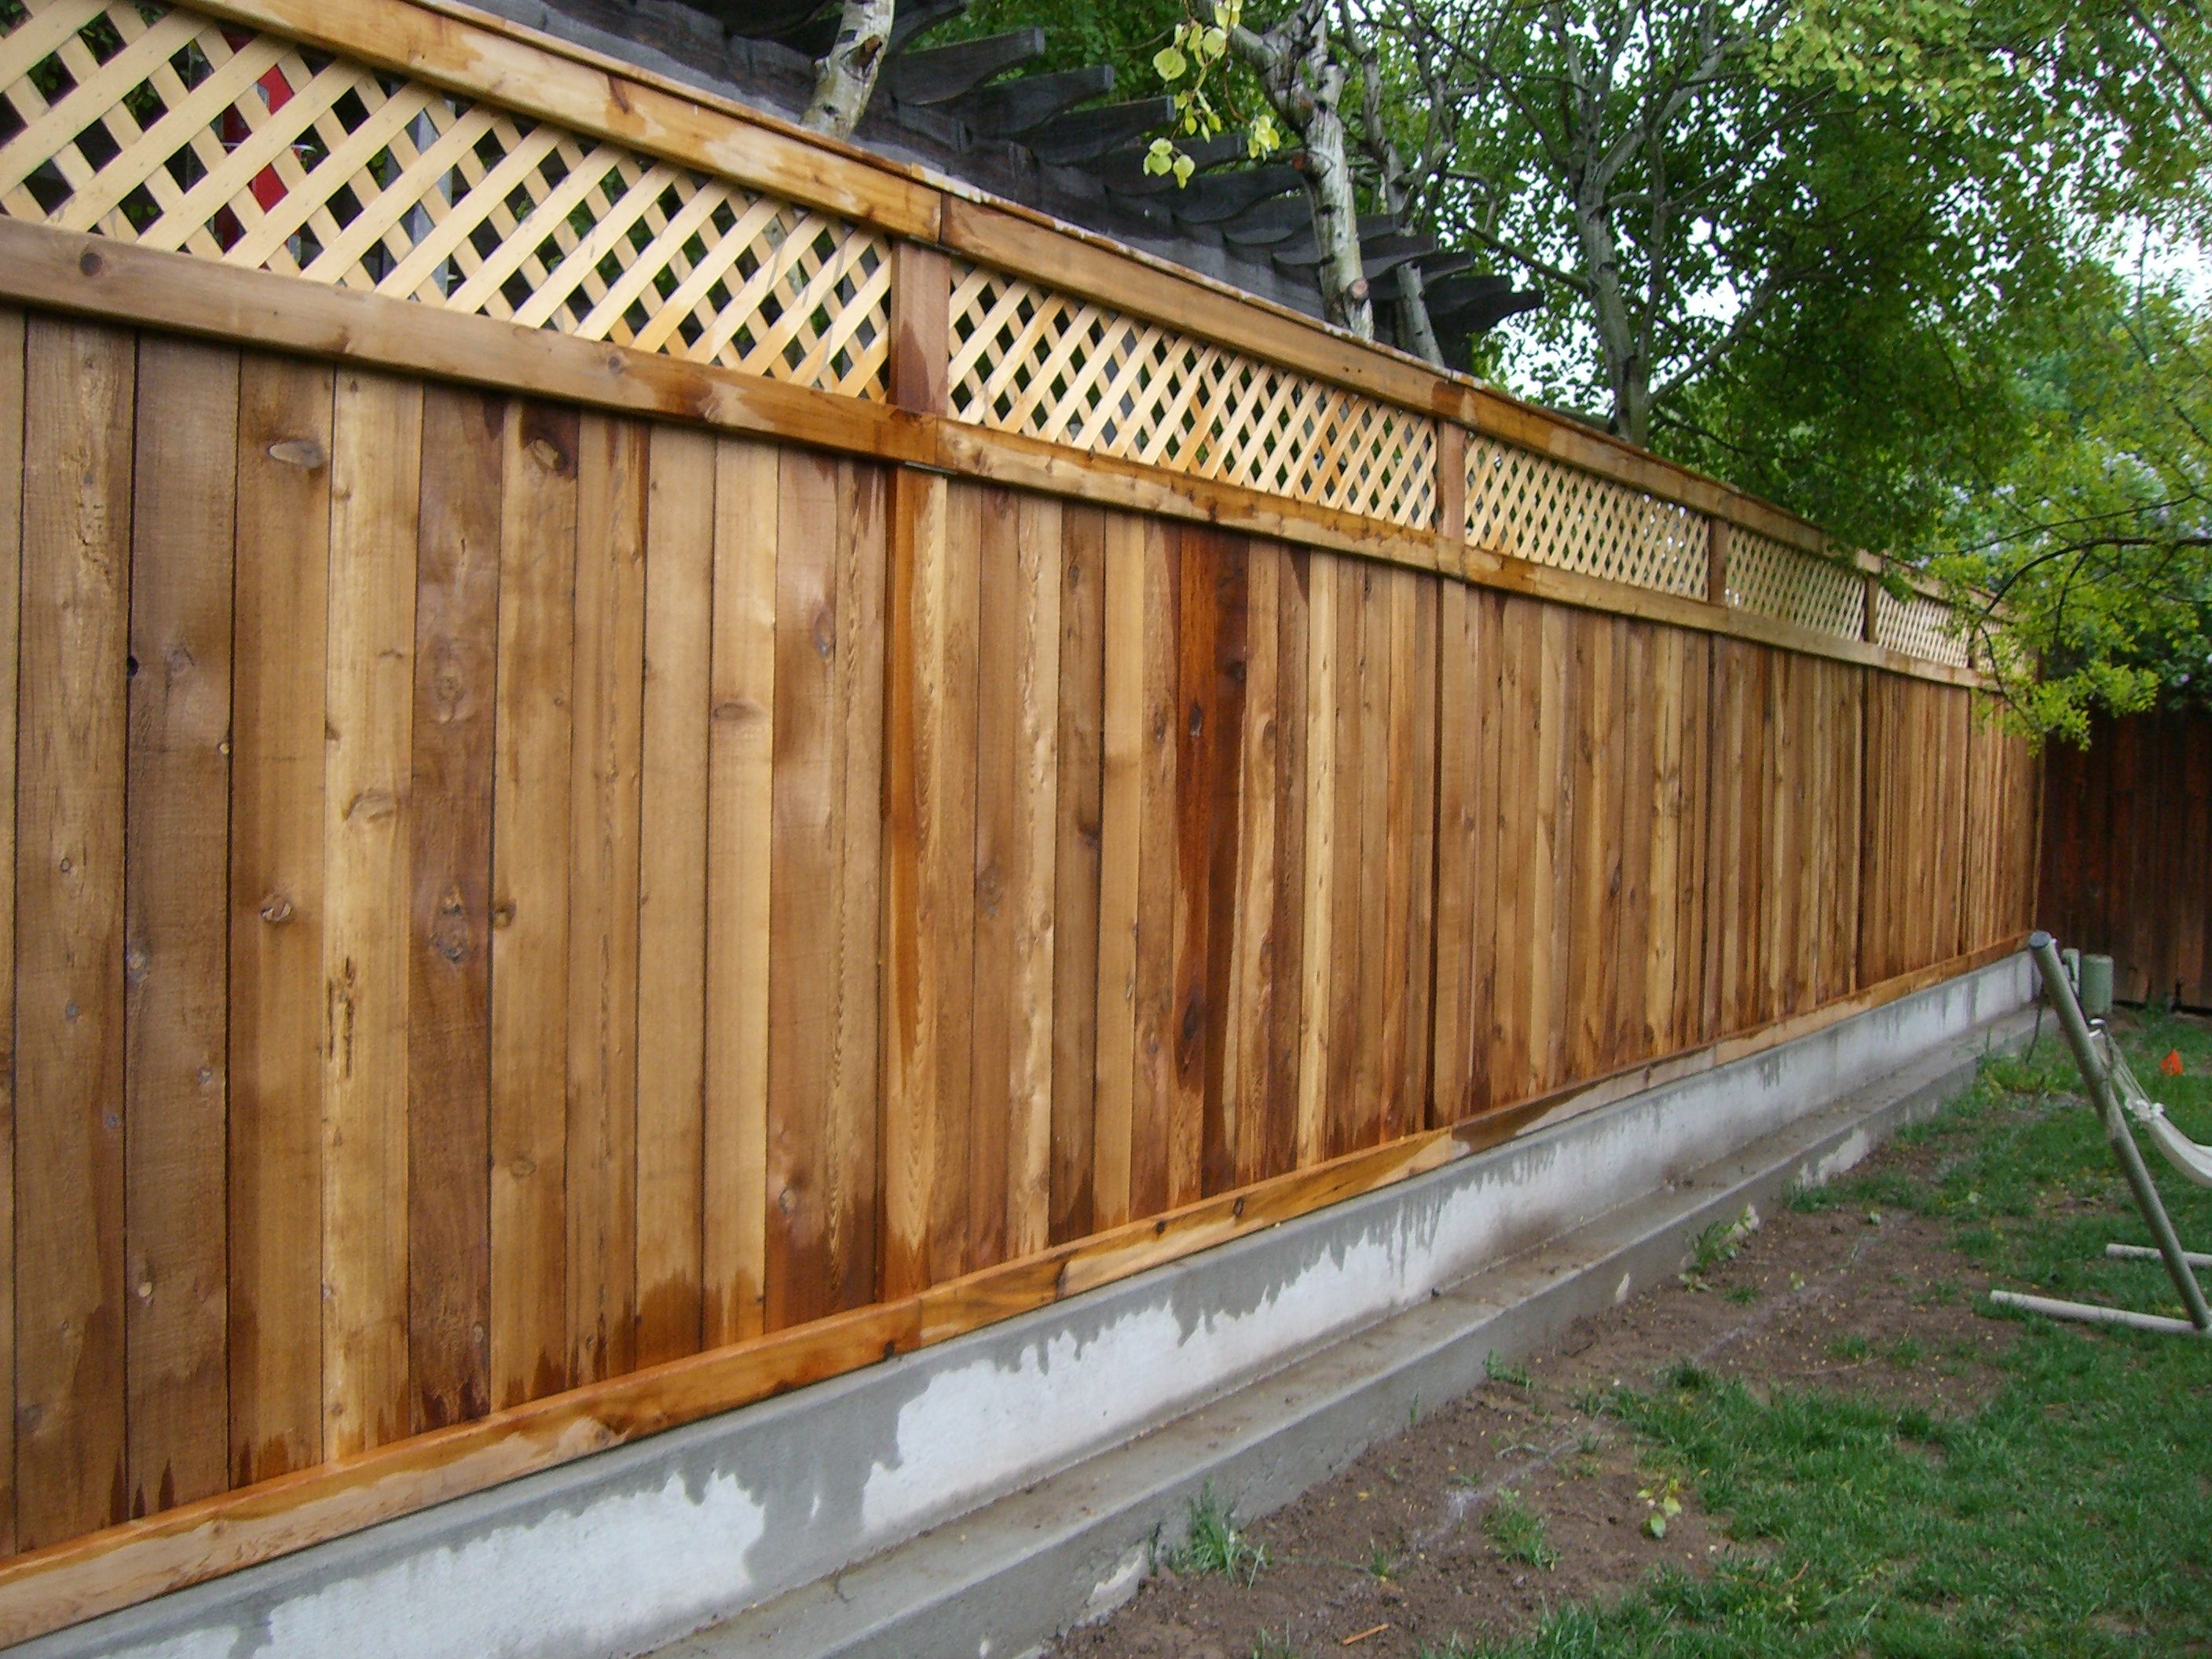 17 best images about fence on pinterest fence design large planter boxes and picket fences